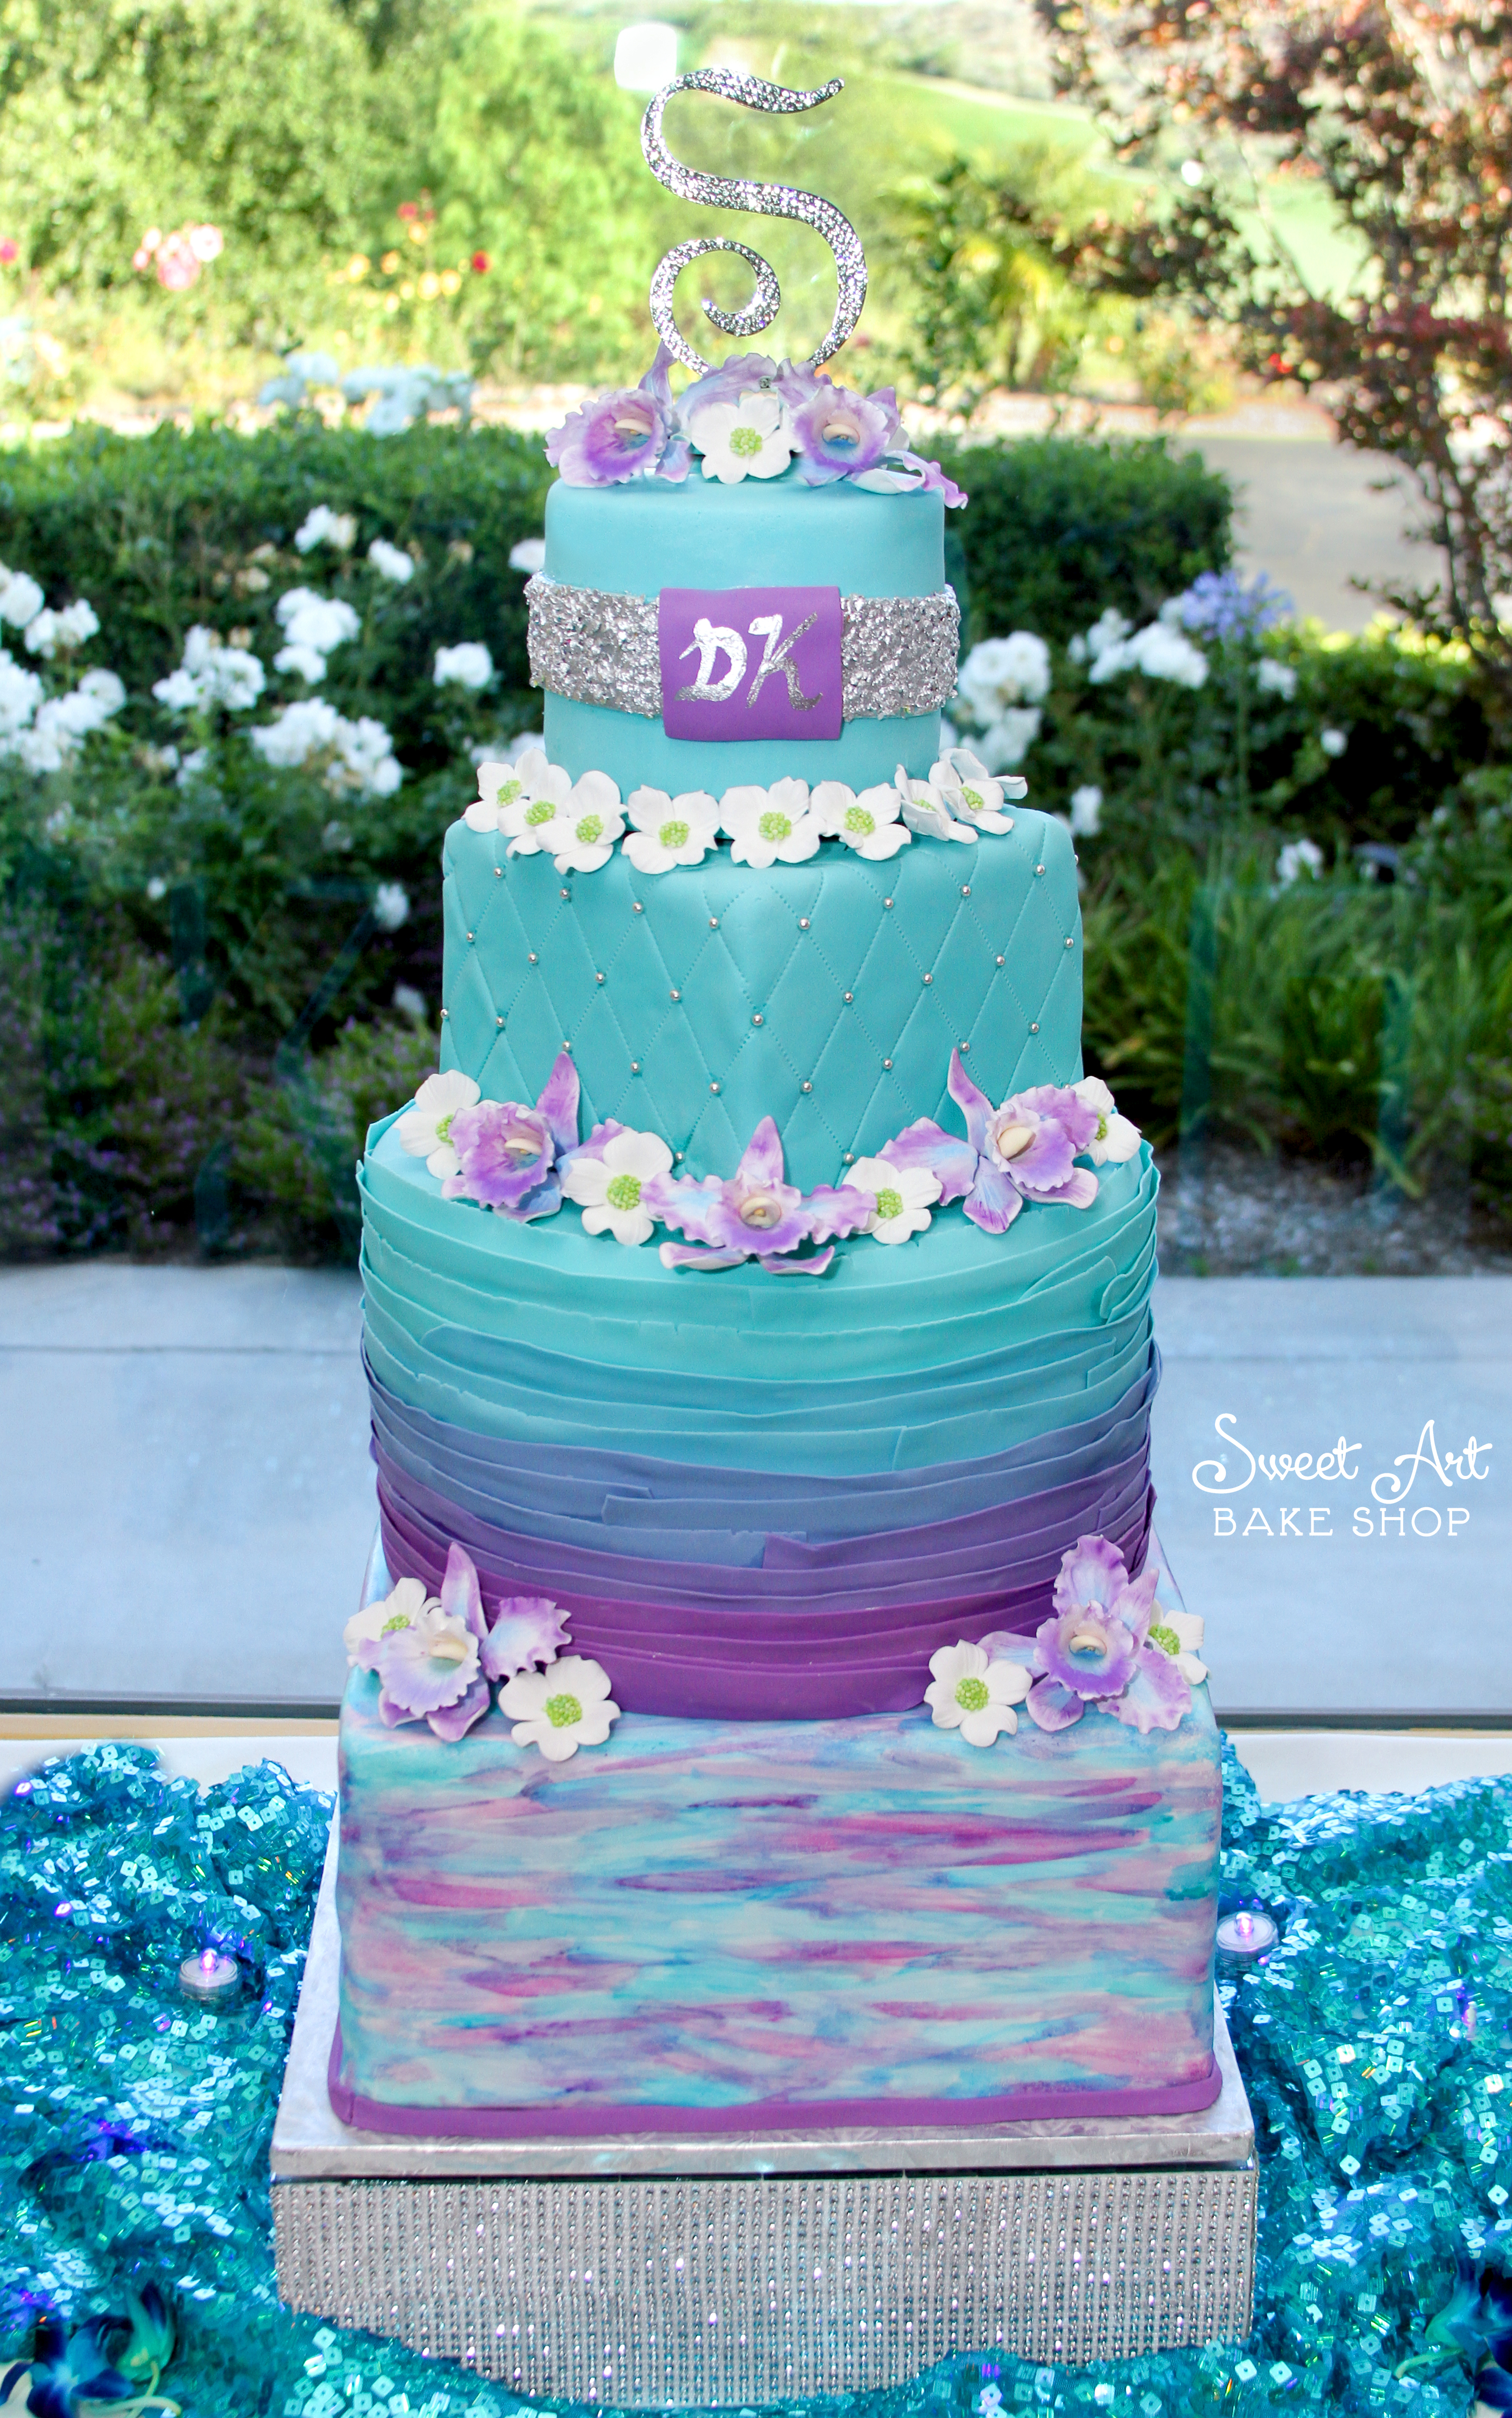 Kyrstin & Daniel's Wedding Cake